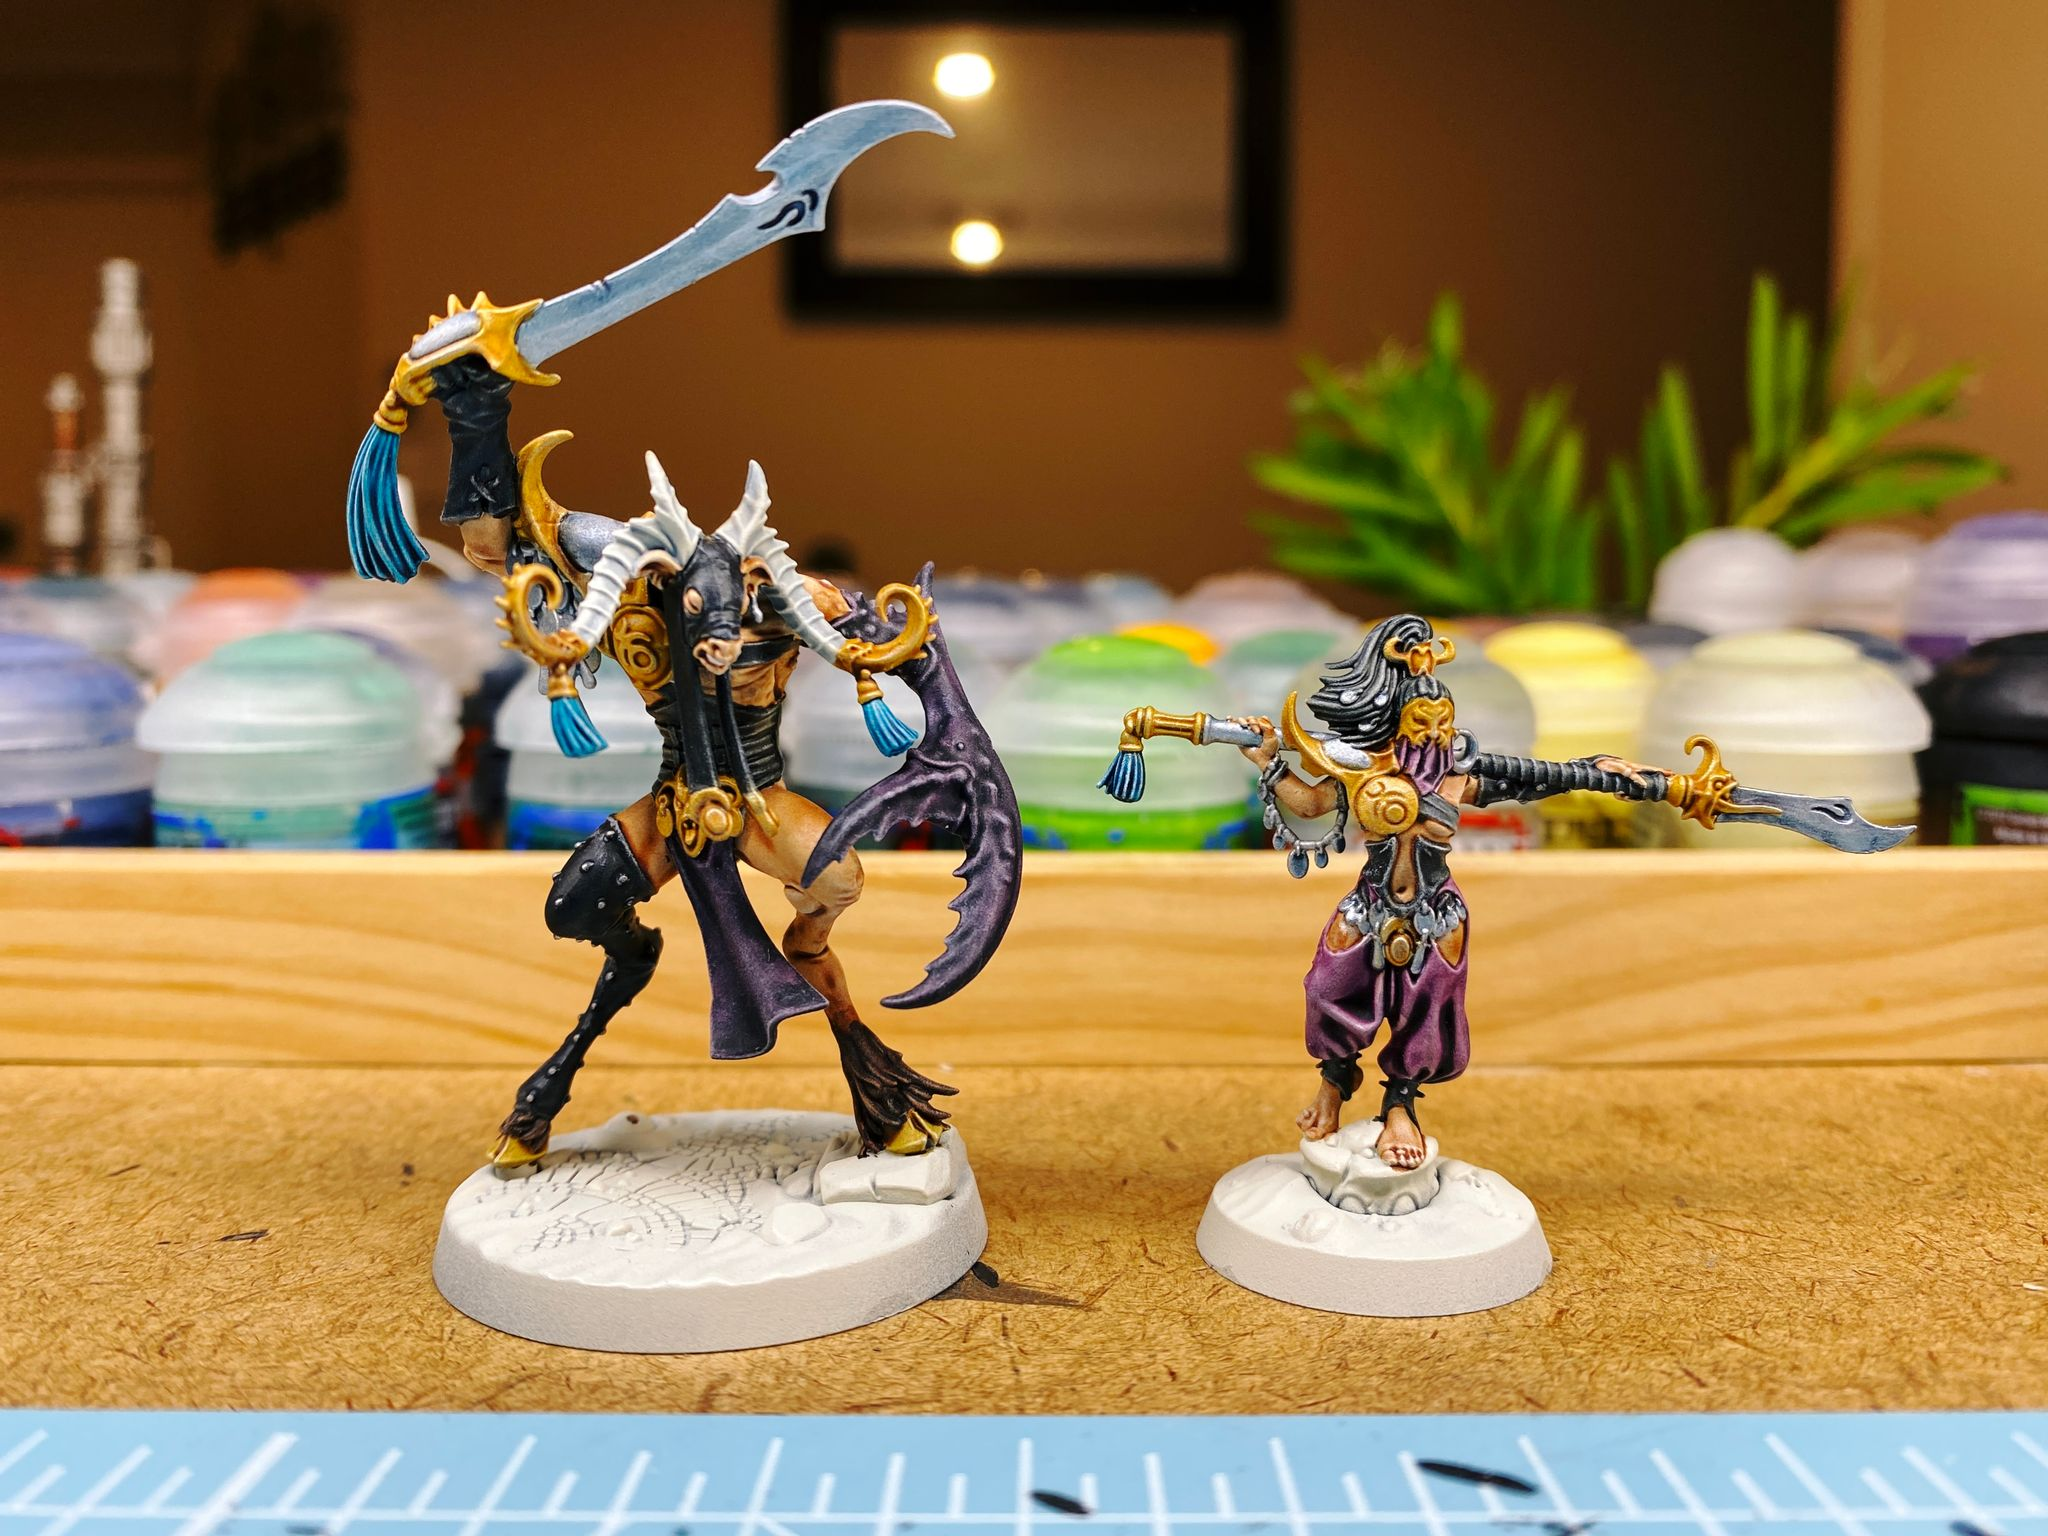 A photo of painted two miniatures. One is a tall but hunched over goatman wearing leather and wielding a sword over its head. The other is a woman with a corset, Middle-Eastern type puffy pants and a gold mask with a purple face covering, and holding a glaive over her shoulders.